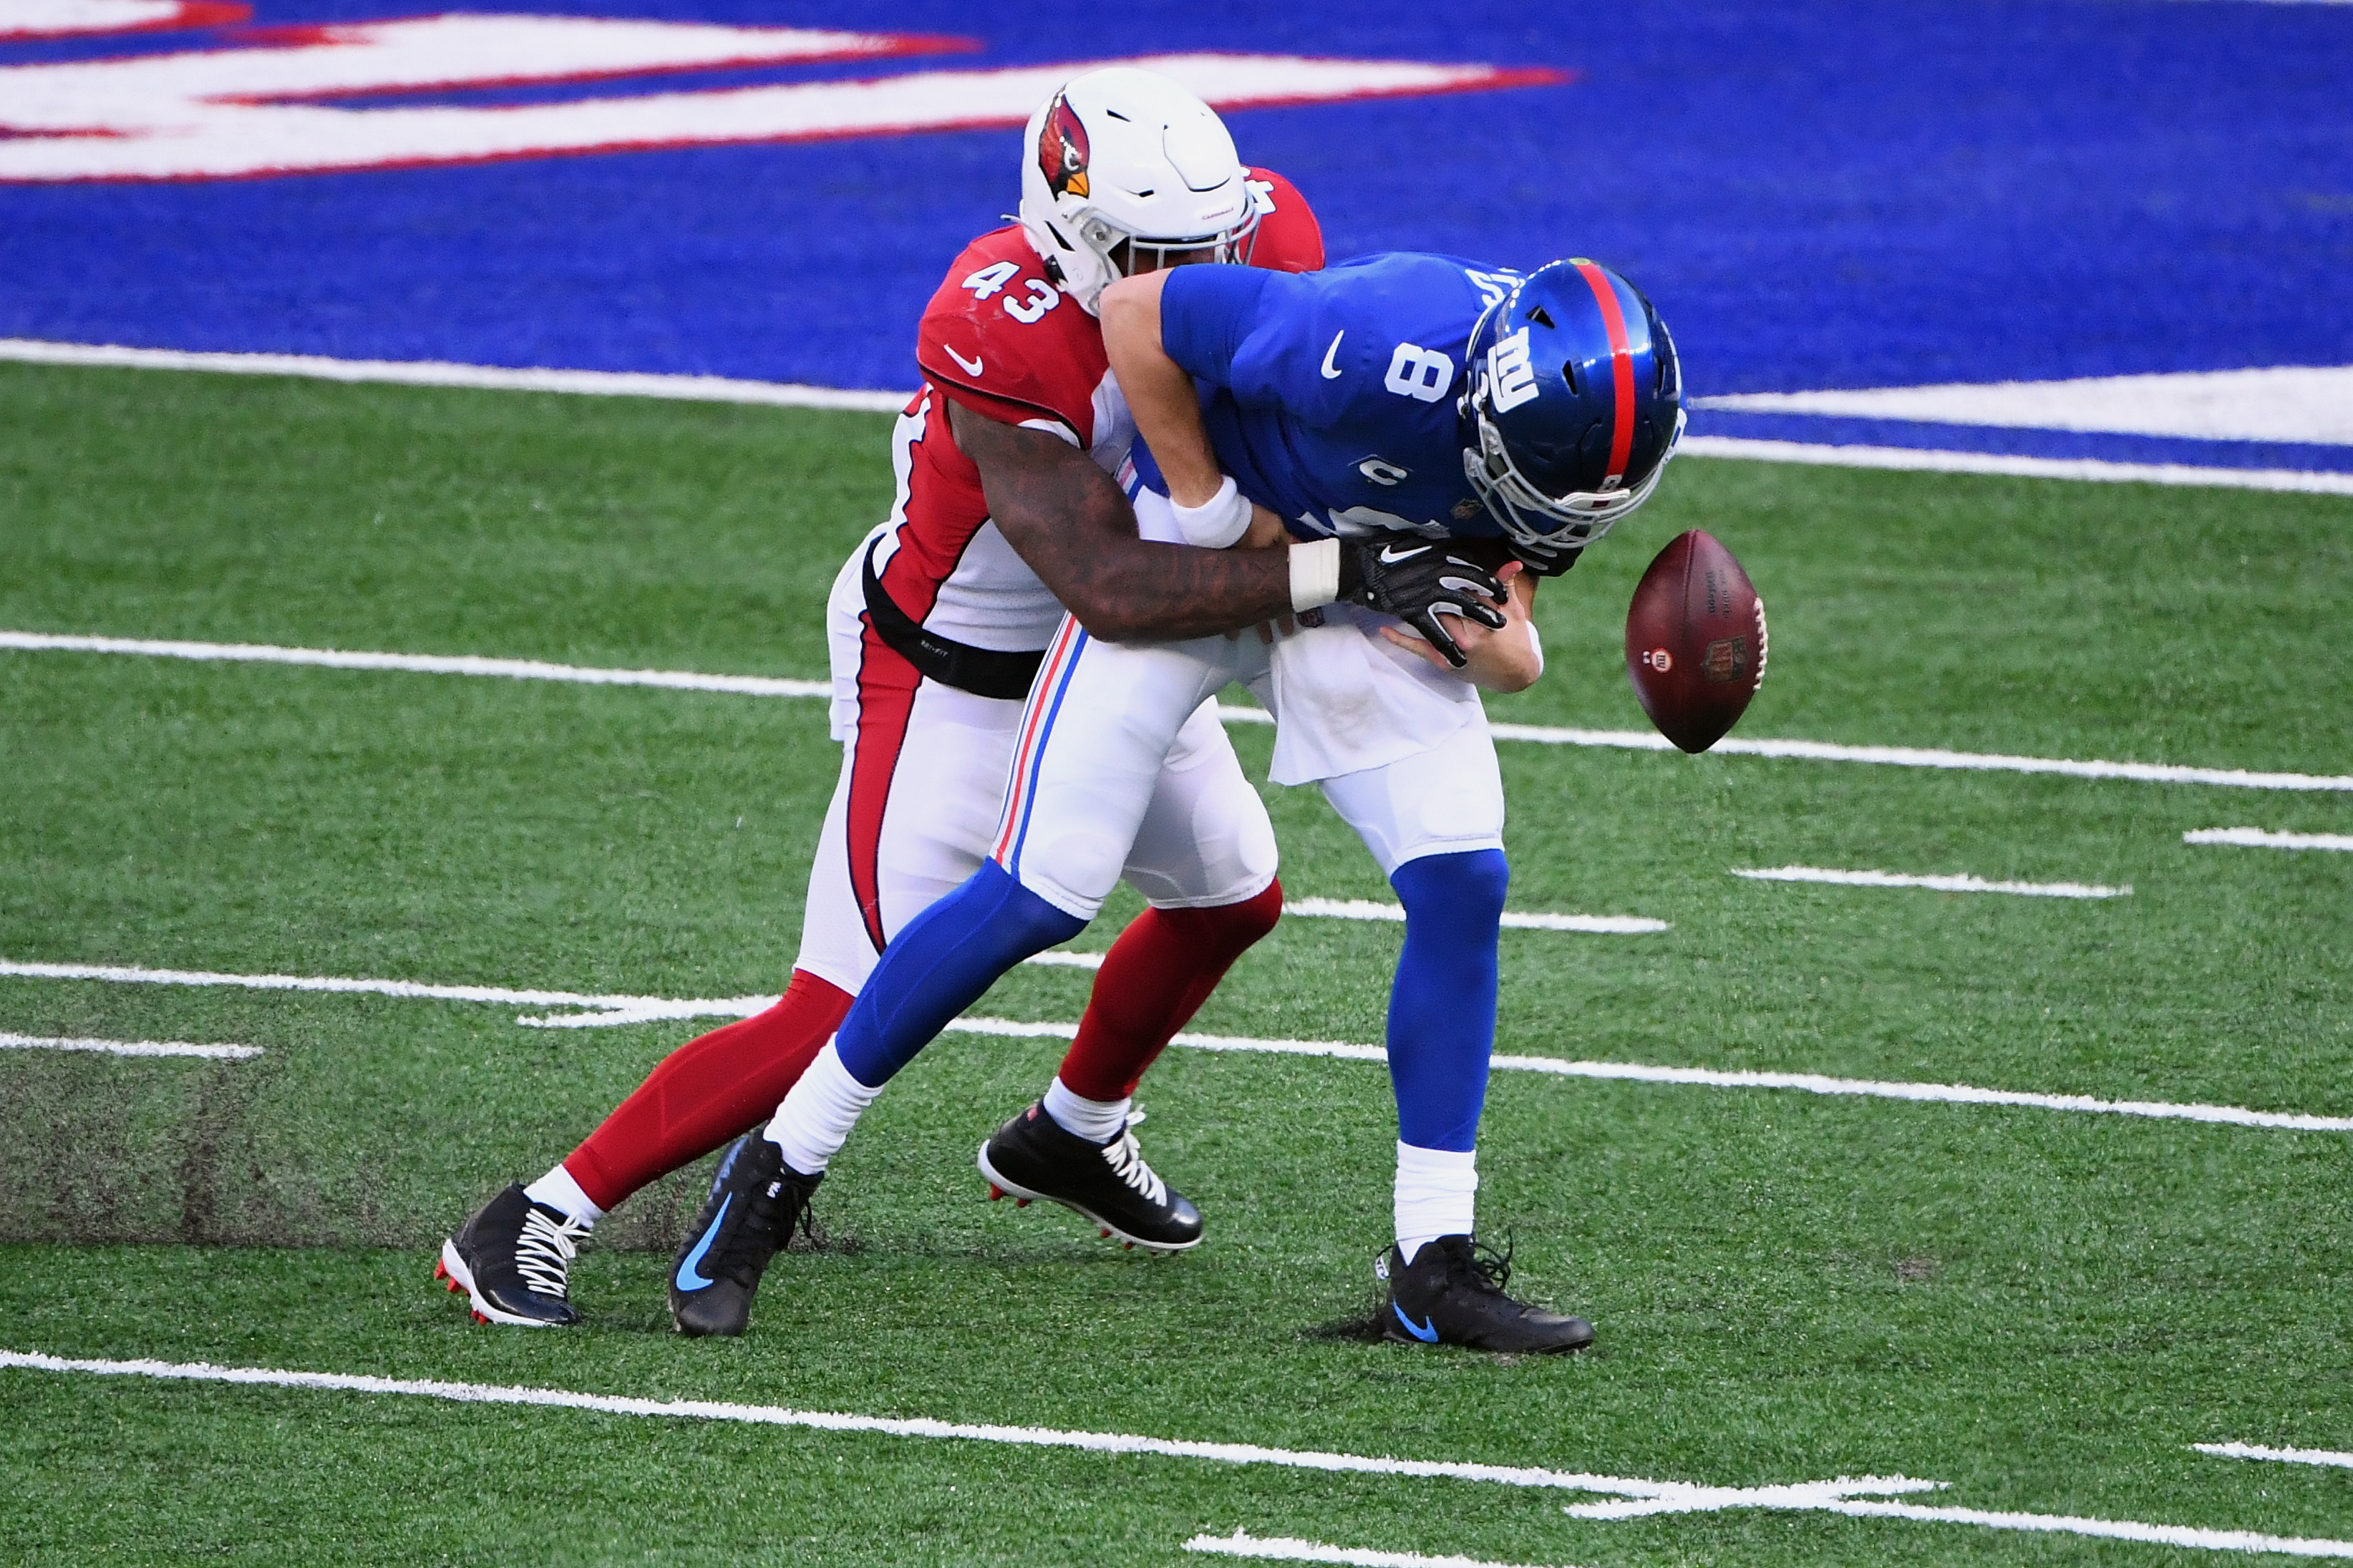 New York Giants, Hasson Reddick